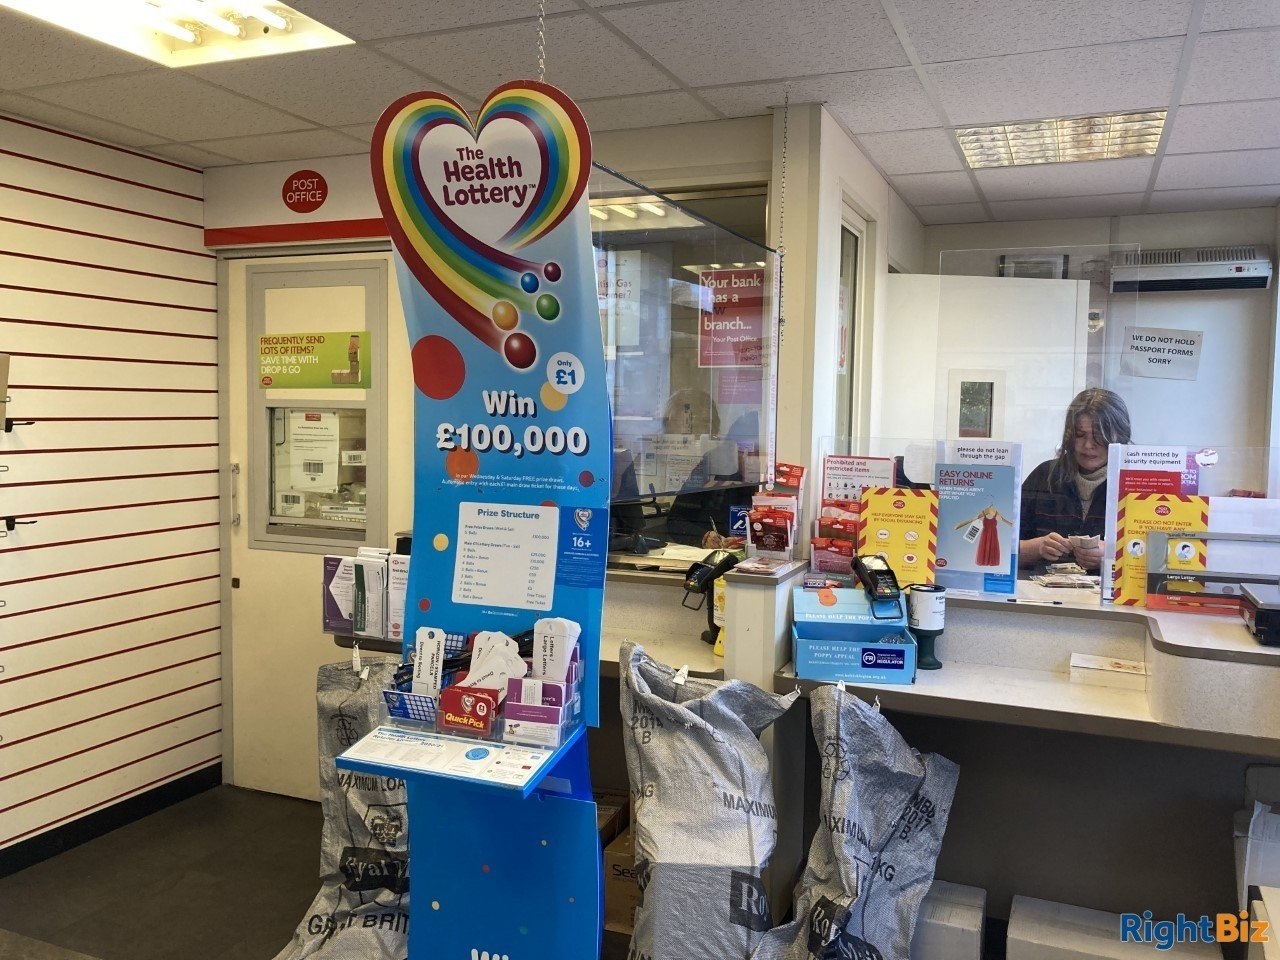 Mains Post Office located in sought after area of Solihull - Image 2